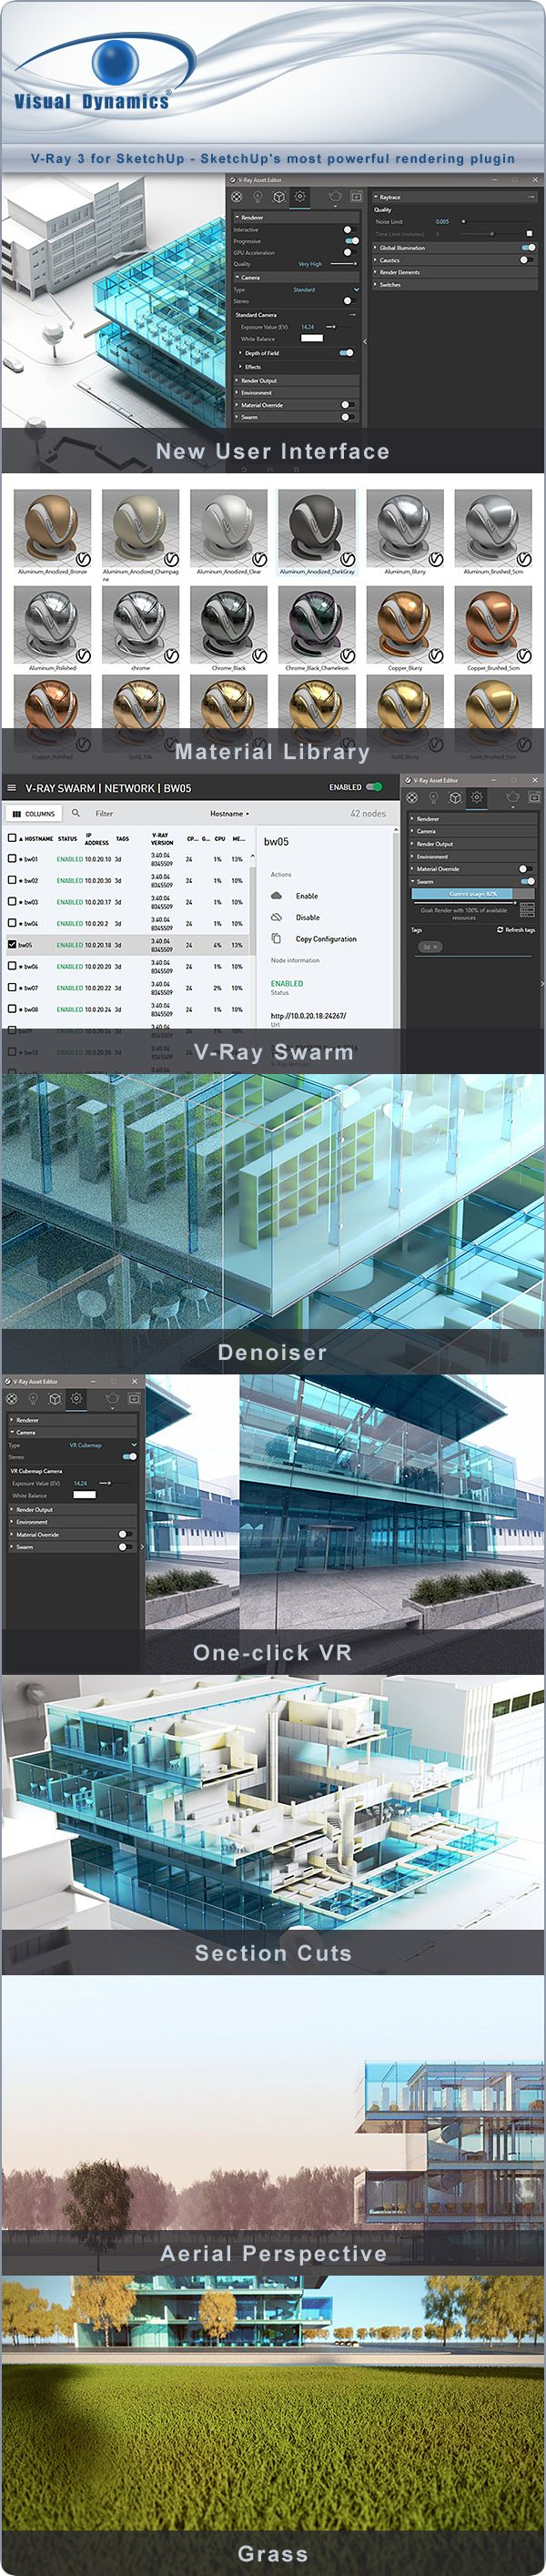 V-Ray 3 for SketchUp - SketchUp's most powerful rendering plugin